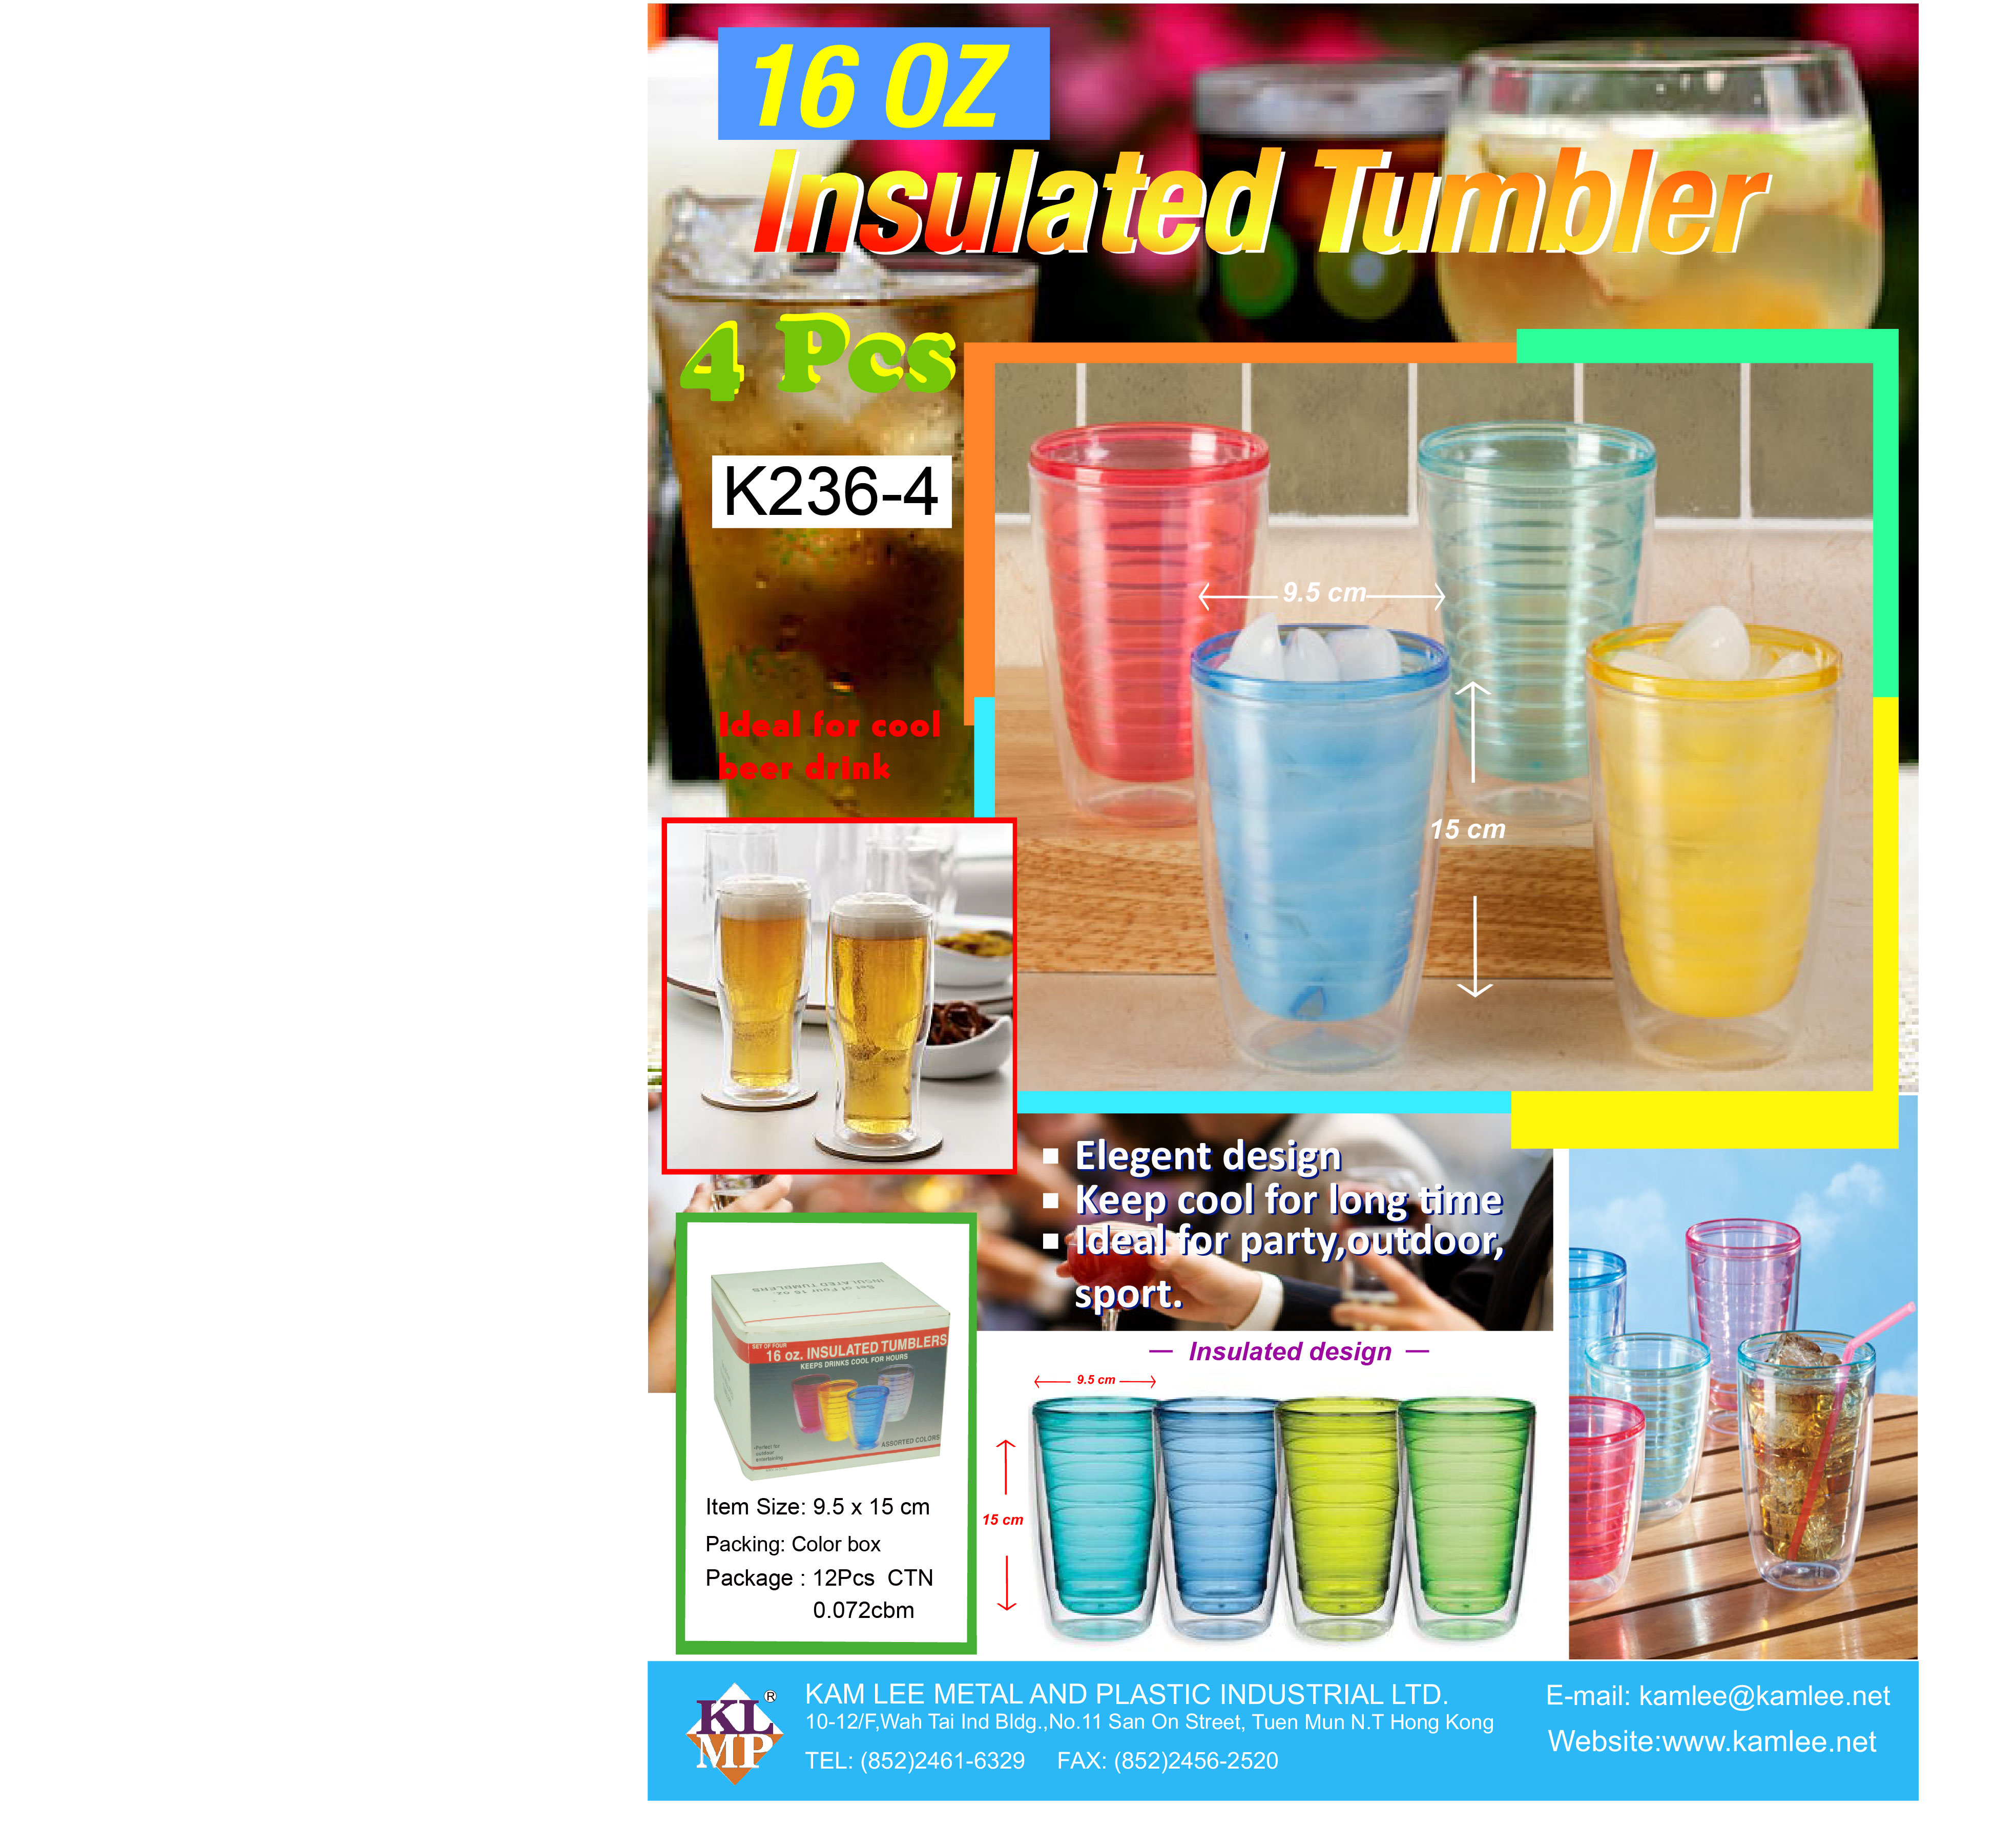 K236/4 S/4 PLASTIC INSULATED TUMBLER (16 OZ)